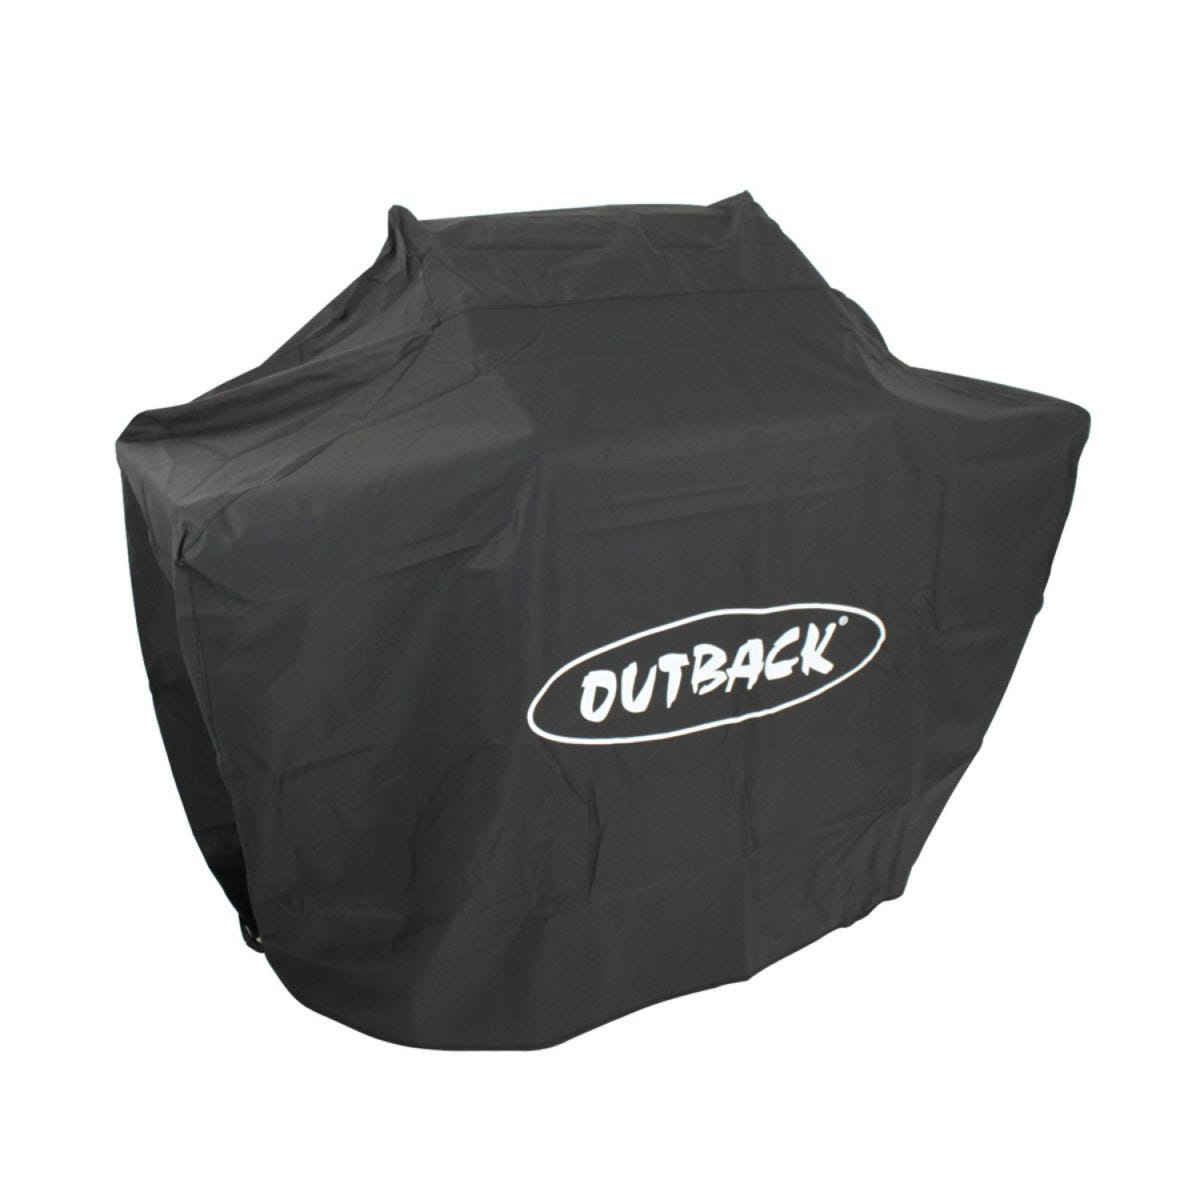 Outback Meteor 6-Burner Gas BBQ Cover